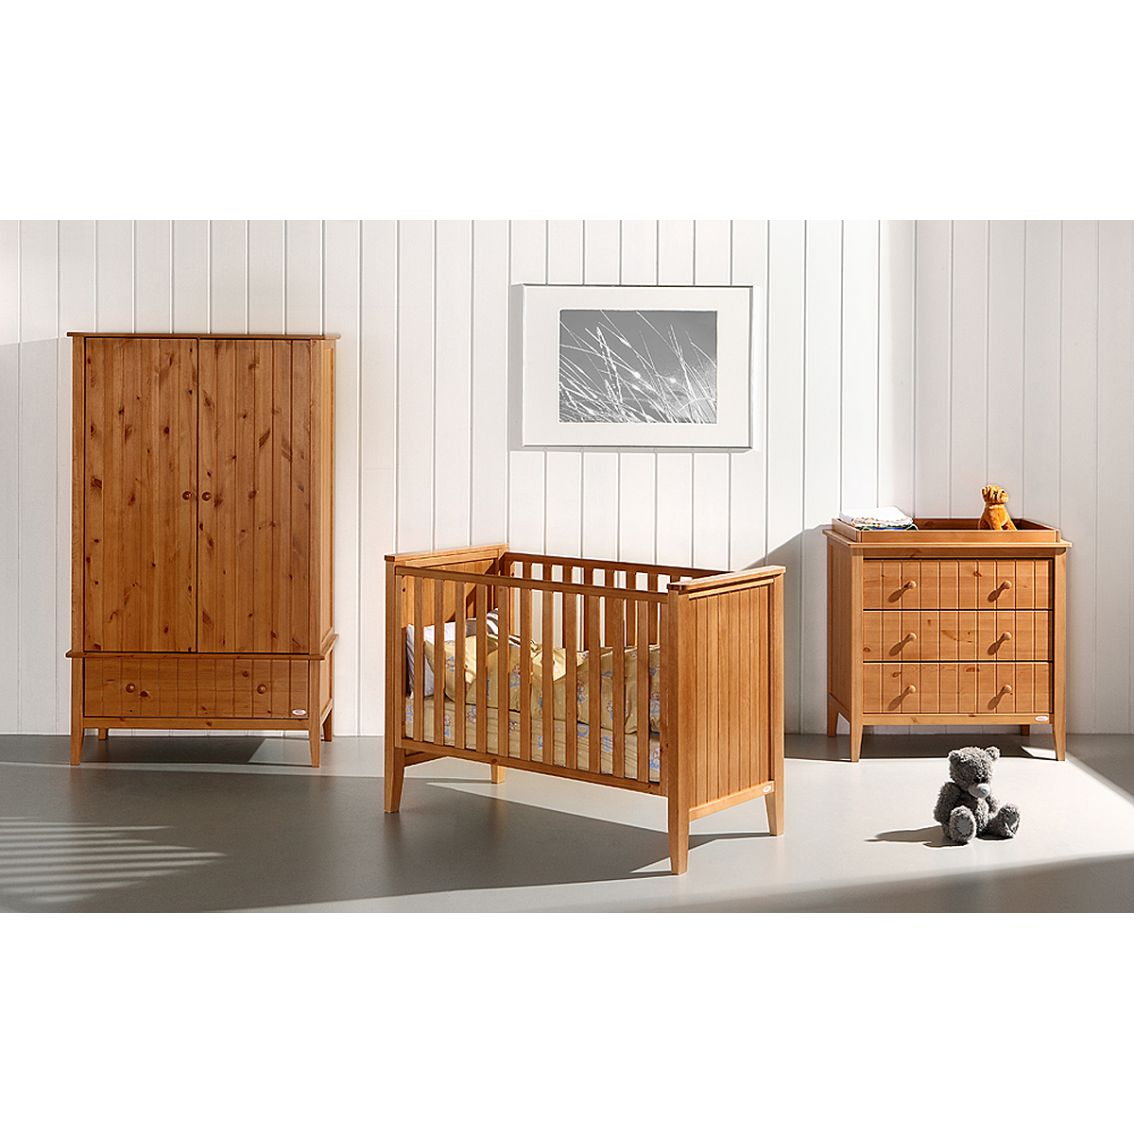 Nursery Furniture : Remarkable Nursery Furniture Set 1134 x 1134 · 122 kB · jpeg